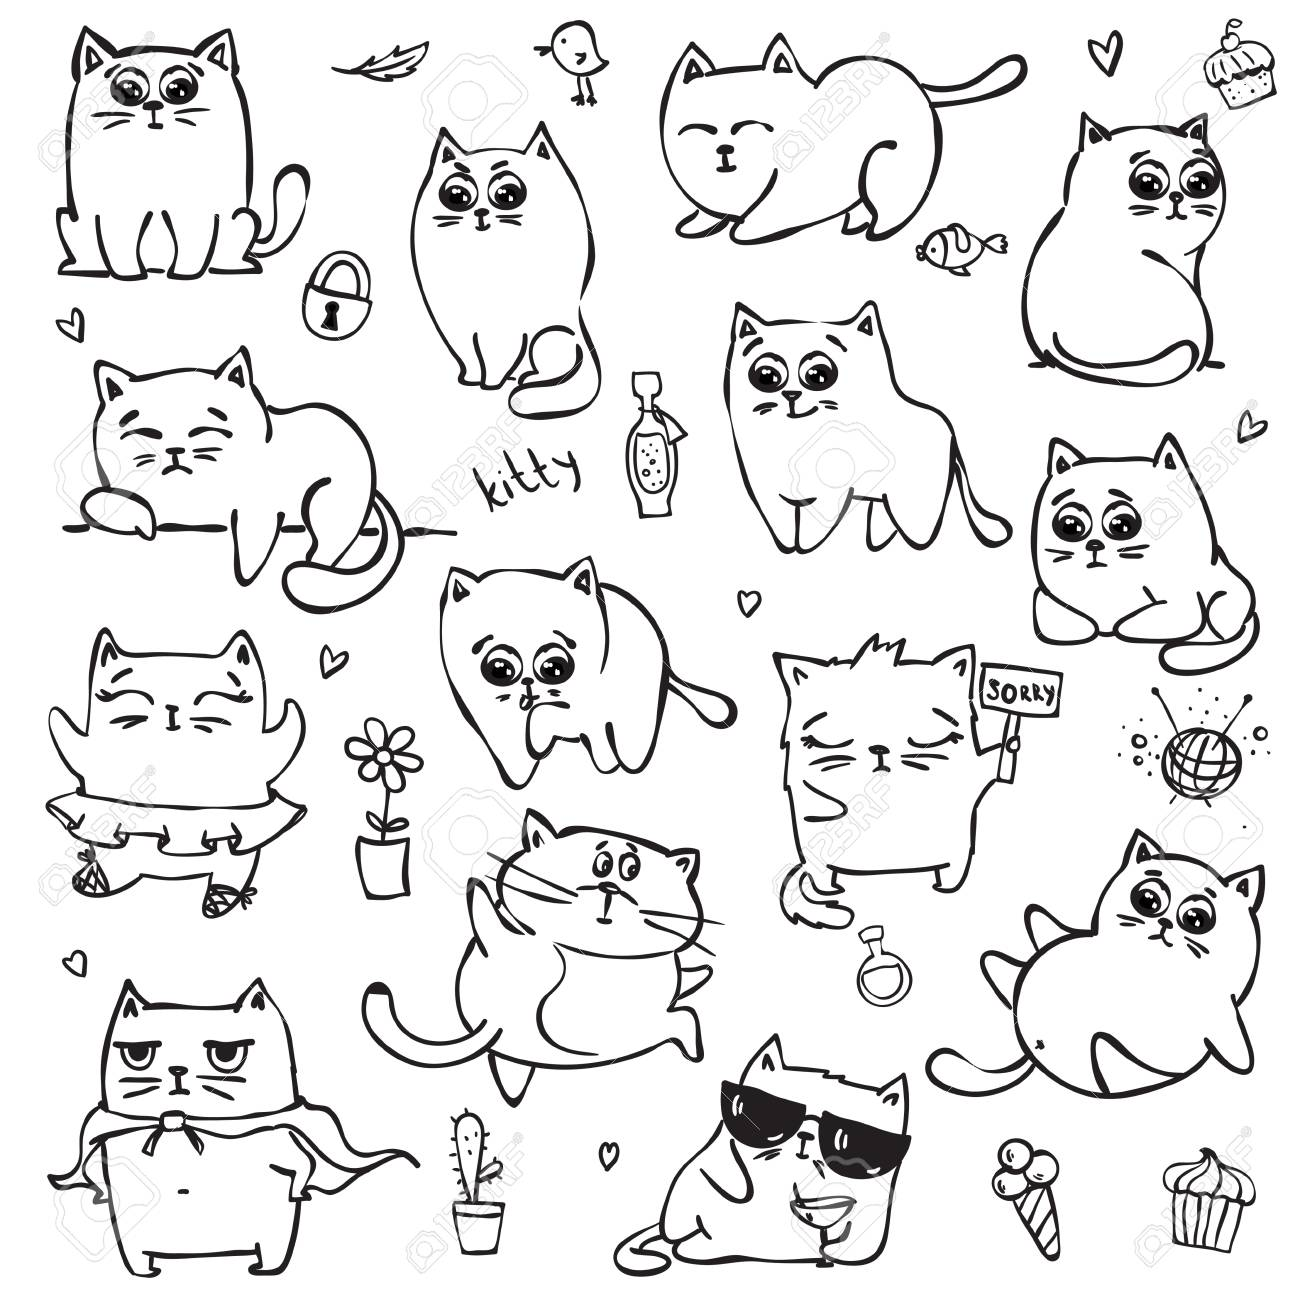 Vector Set With Black And White Doodle Cute Cats For Greeting Royalty Free Cliparts Vectors And Stock Illustration Image 89922272